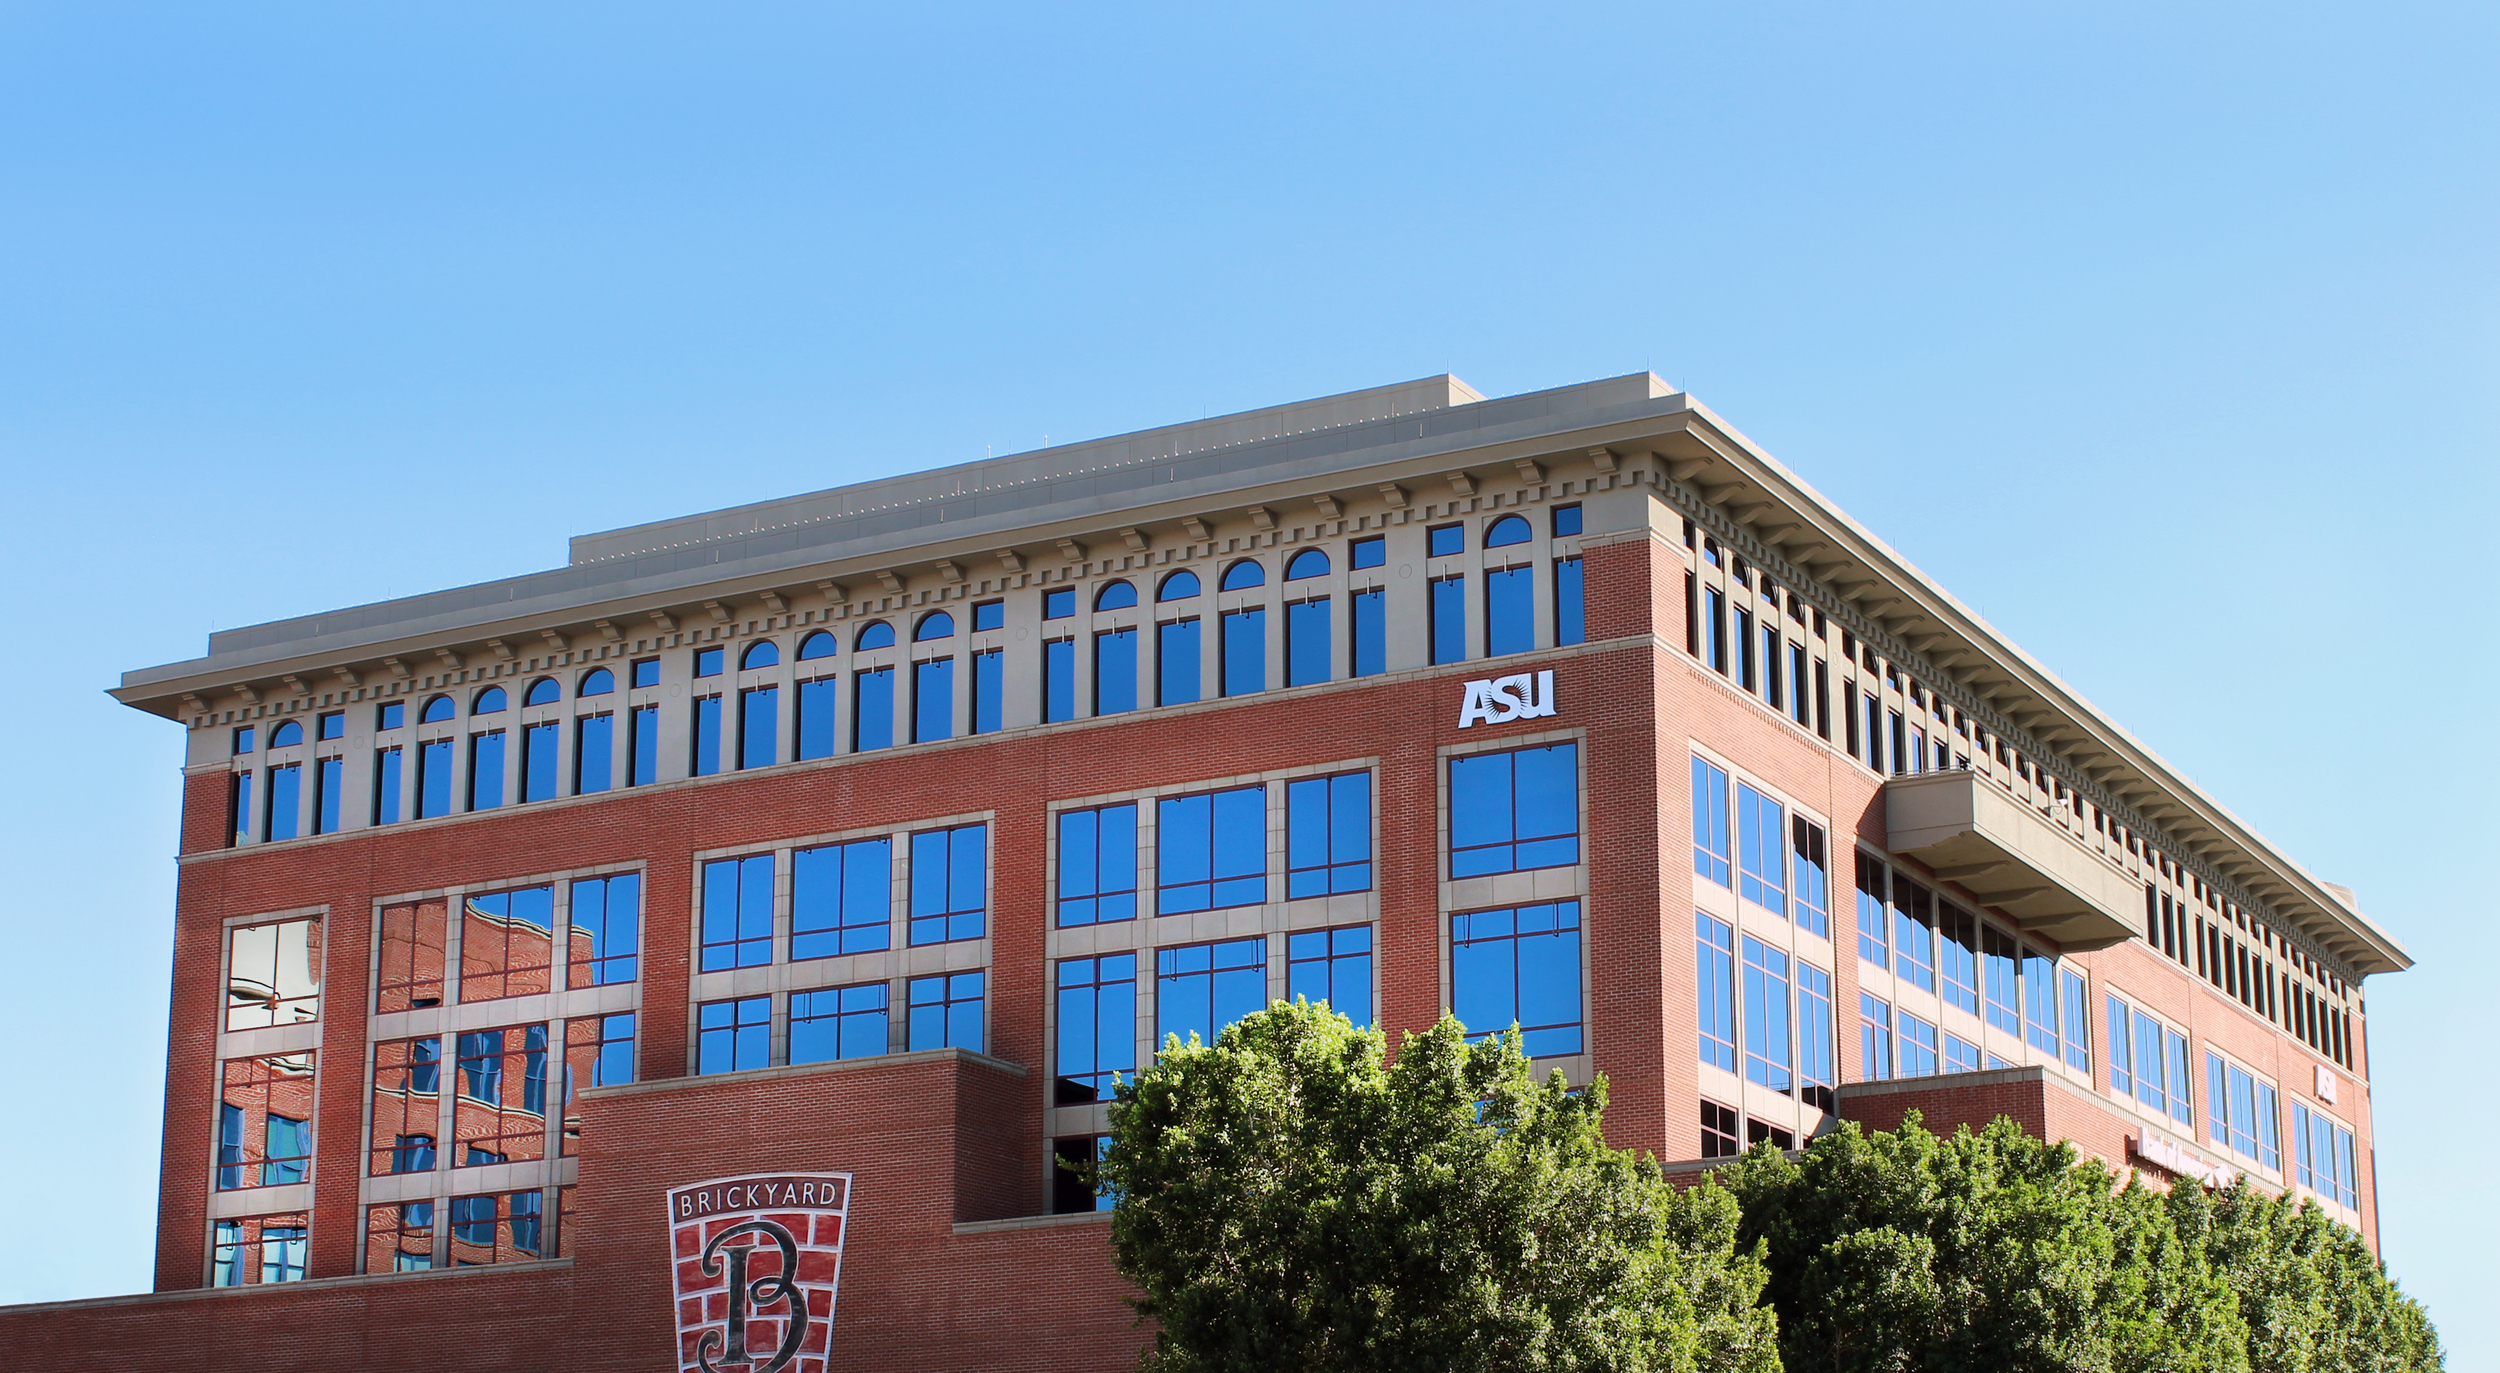 An alternate view of the logo on the Brickyard building.